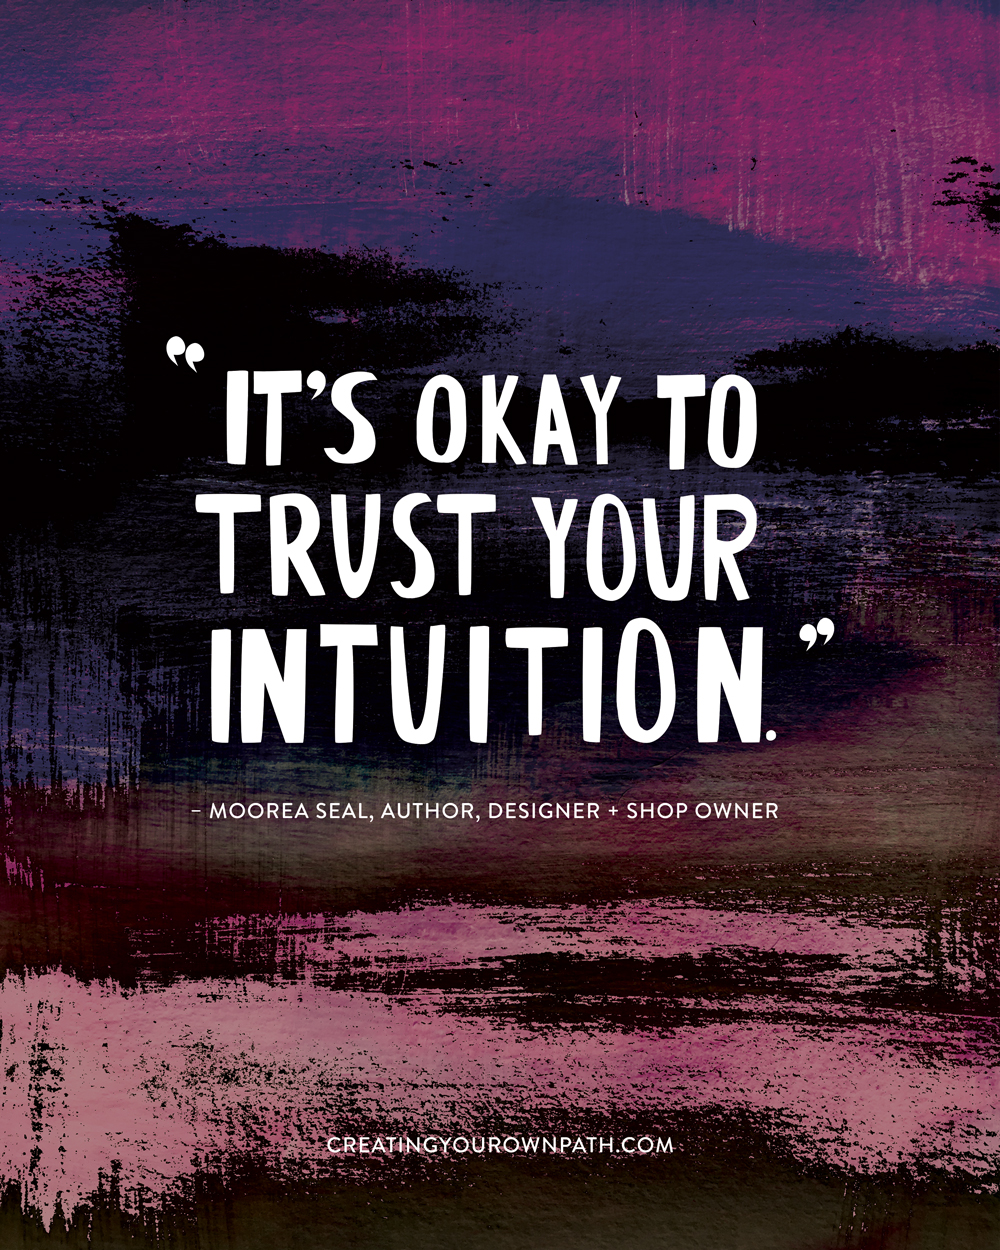 """It's okay to trust your intuition."" — Moorea Seal, Author, Designer + Shop Owner + Art by Melanie Biehle"